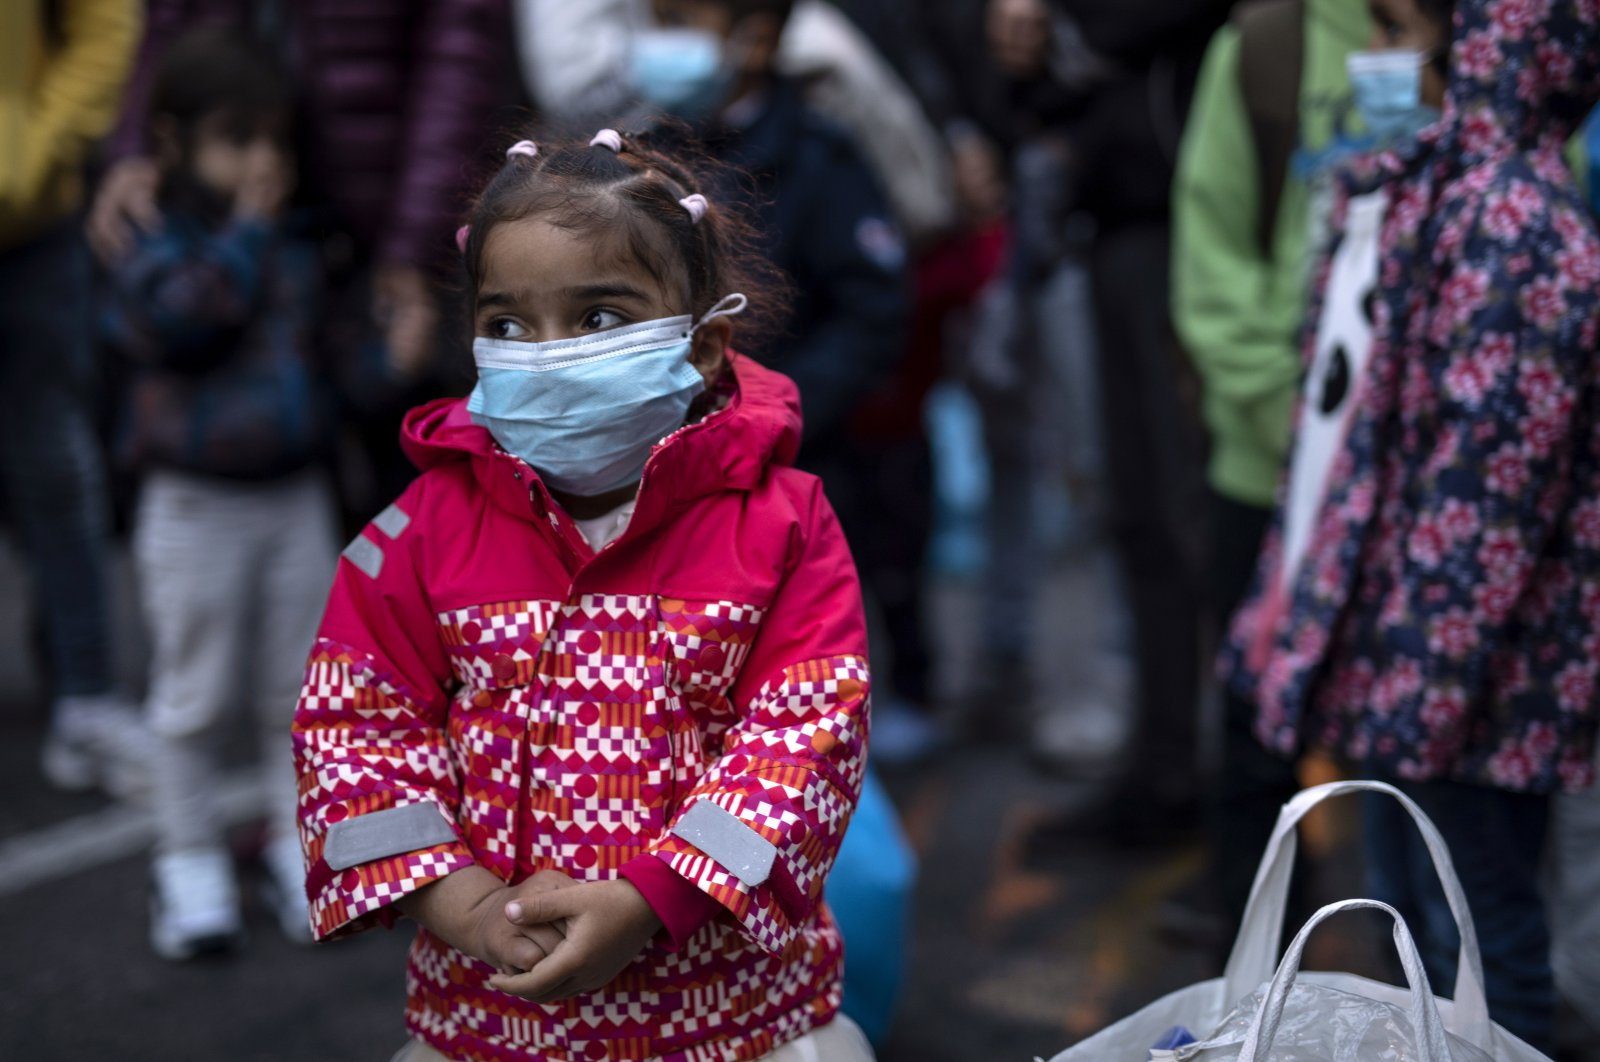 A young girl wearing a mask to prevent the spread of the coronavirus, looks on after refugees and migrants arrived at the port of Piraeus, near Athens, on Monday, May 4, 2020. (AP Photo)